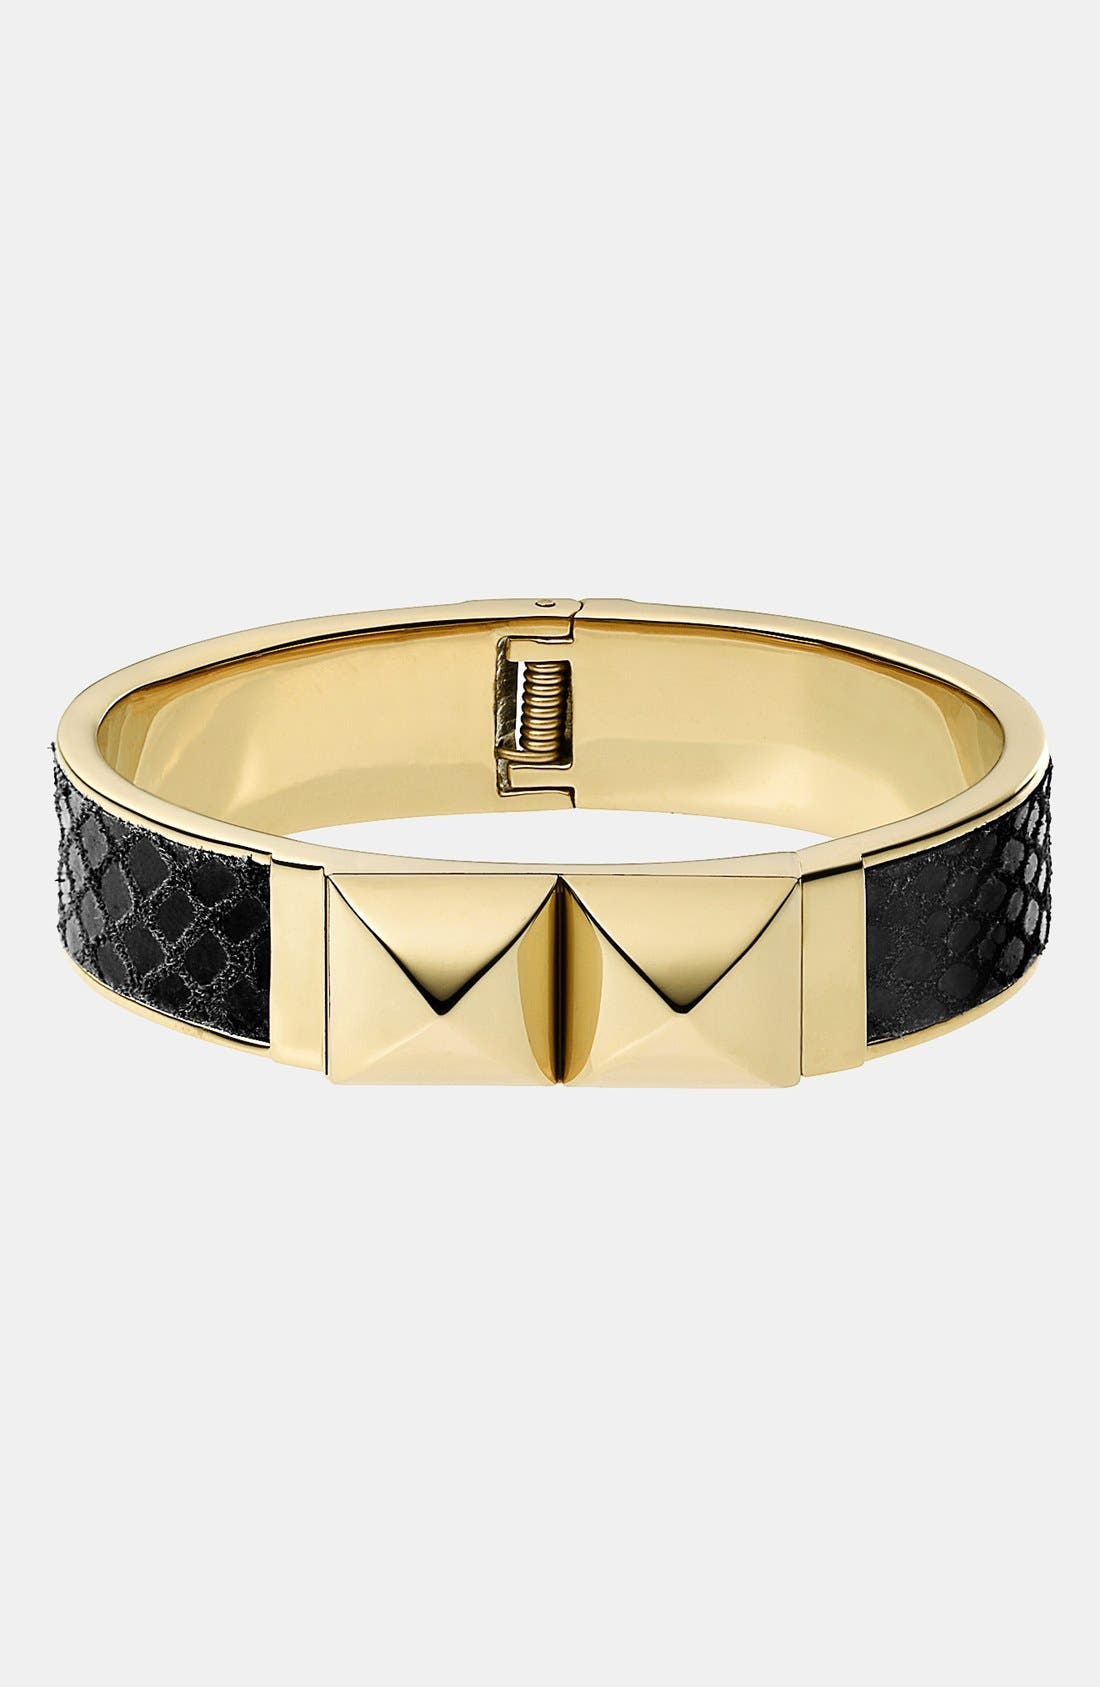 Alternate Image 1 Selected - Michael Kors 'Glam Rock' Hinged Bangle